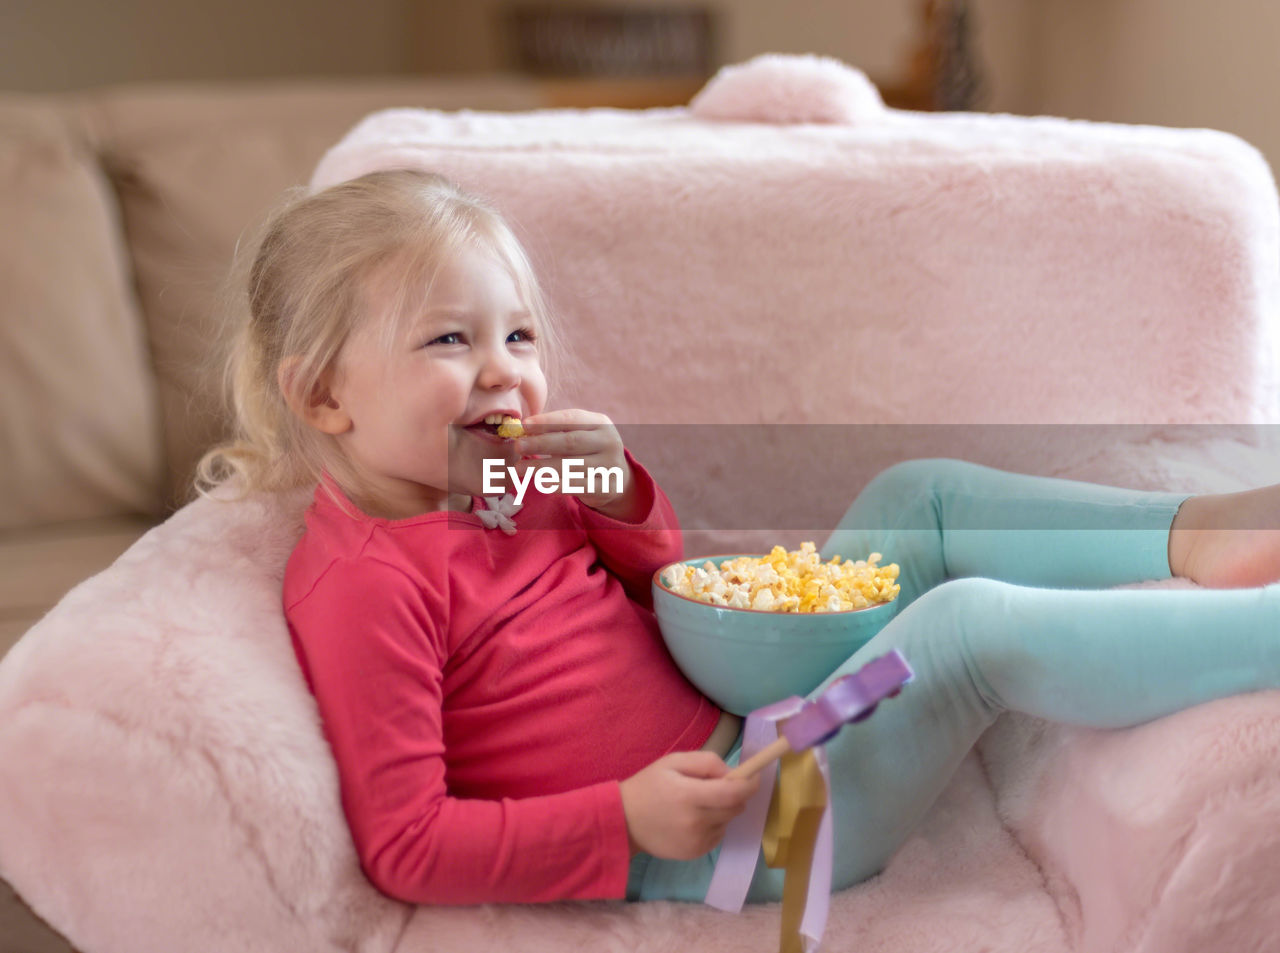 Cheerful Girl Eating Popcorns From Bowl While Relaxing On Chair At Home